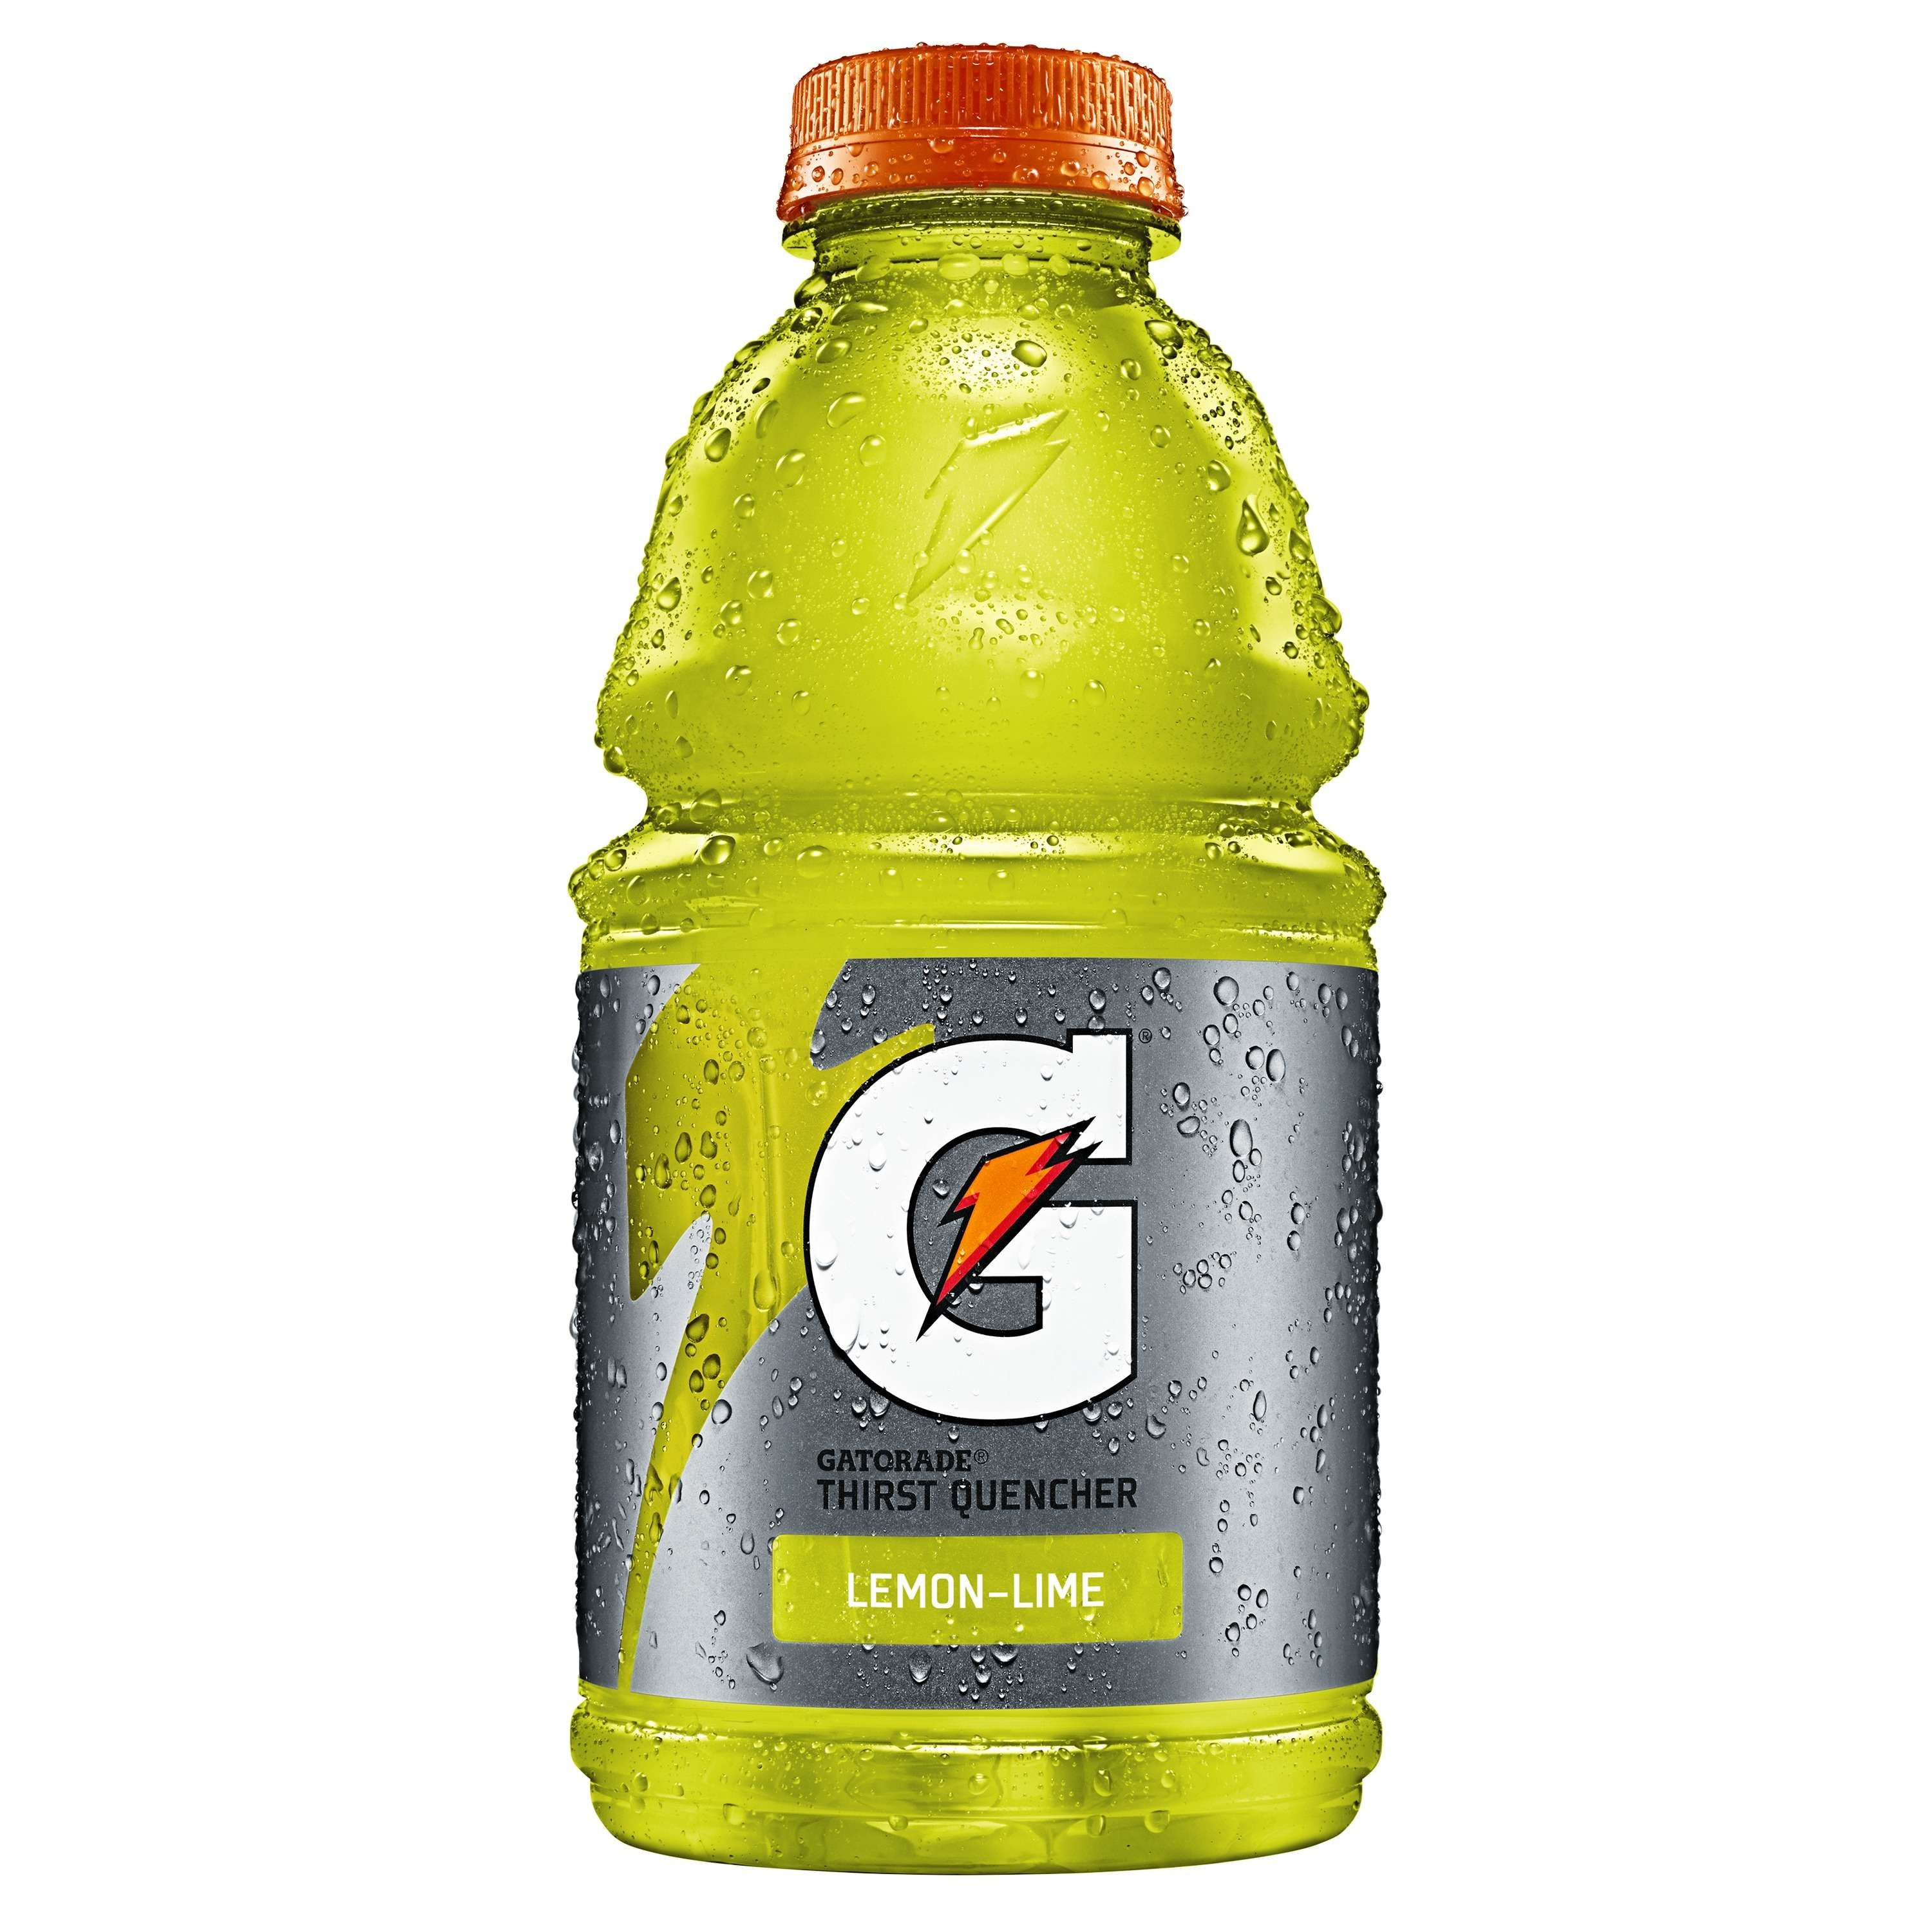 Gatorade Thirst Quencher Sports Drink, Lemon-Lime, 32 Fl Oz, 1 Count